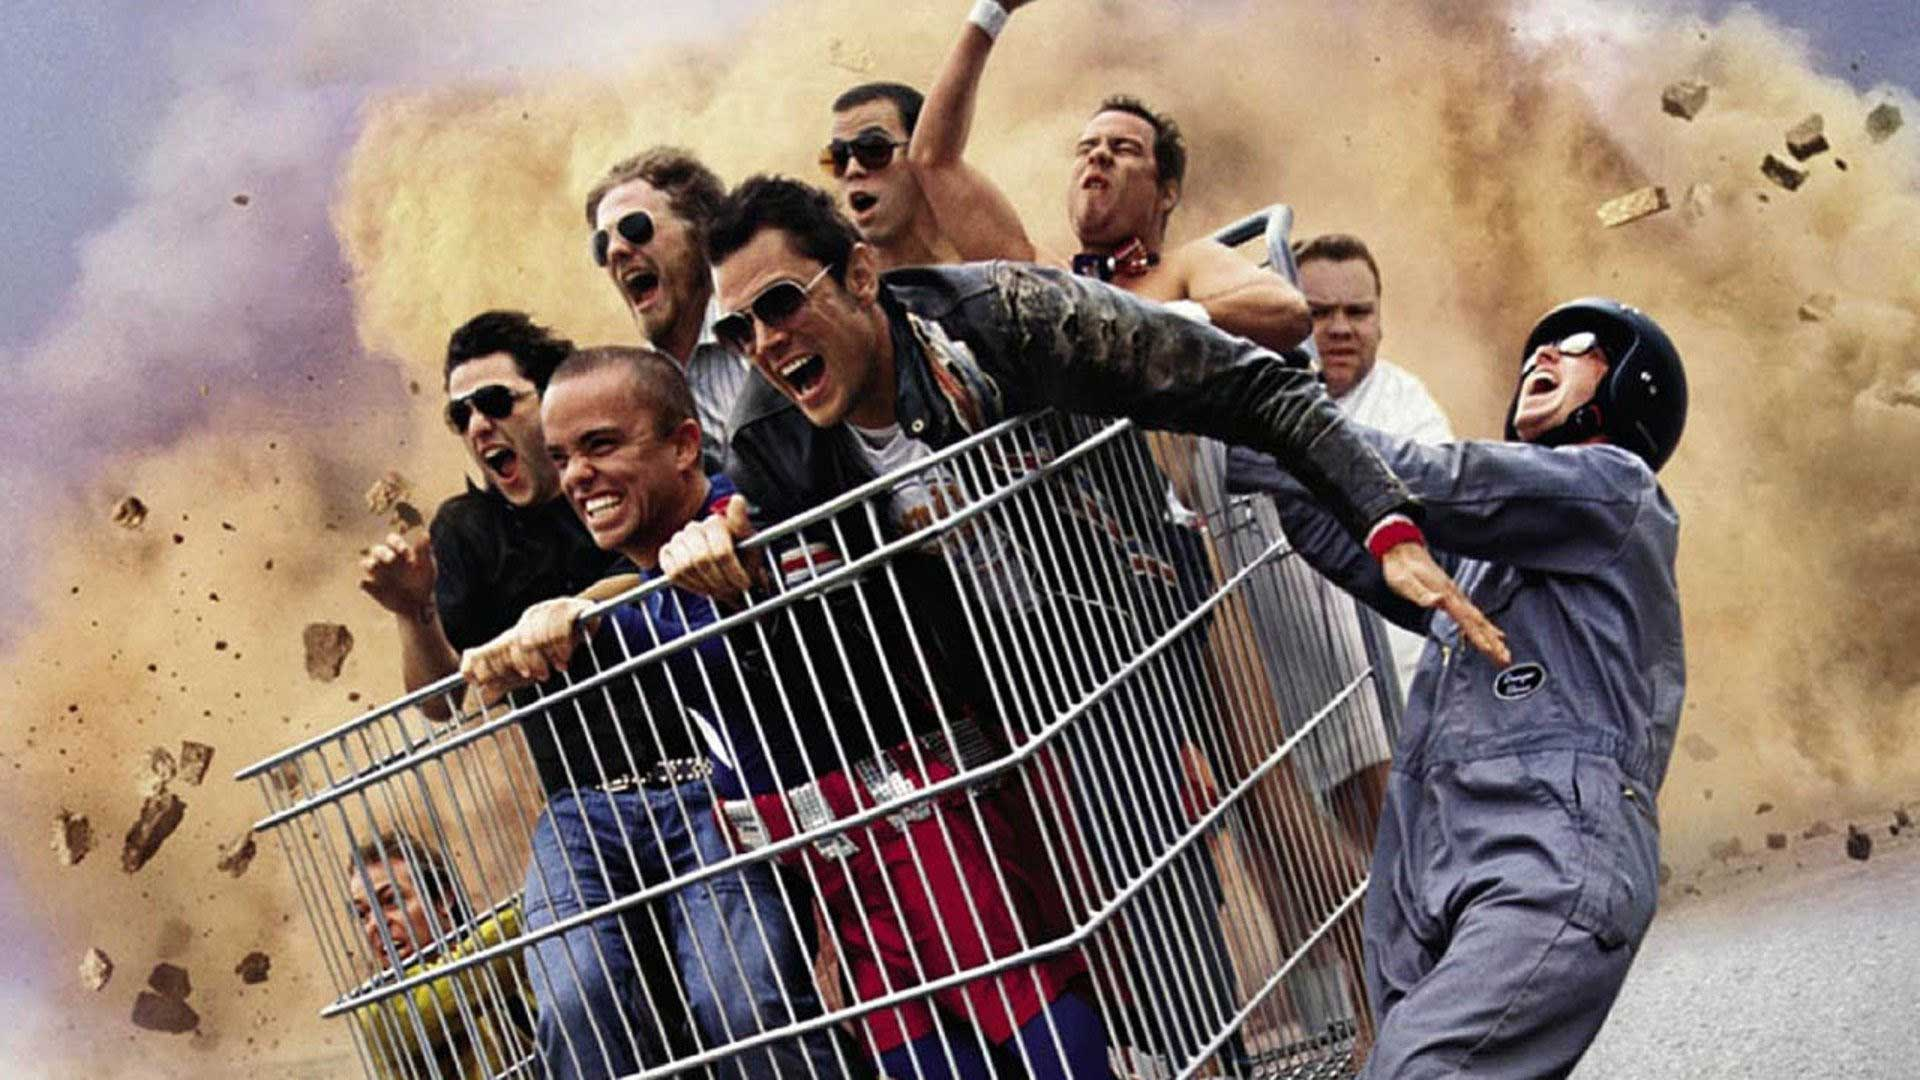 Drinking game for jackass 2 reviews of casino rama